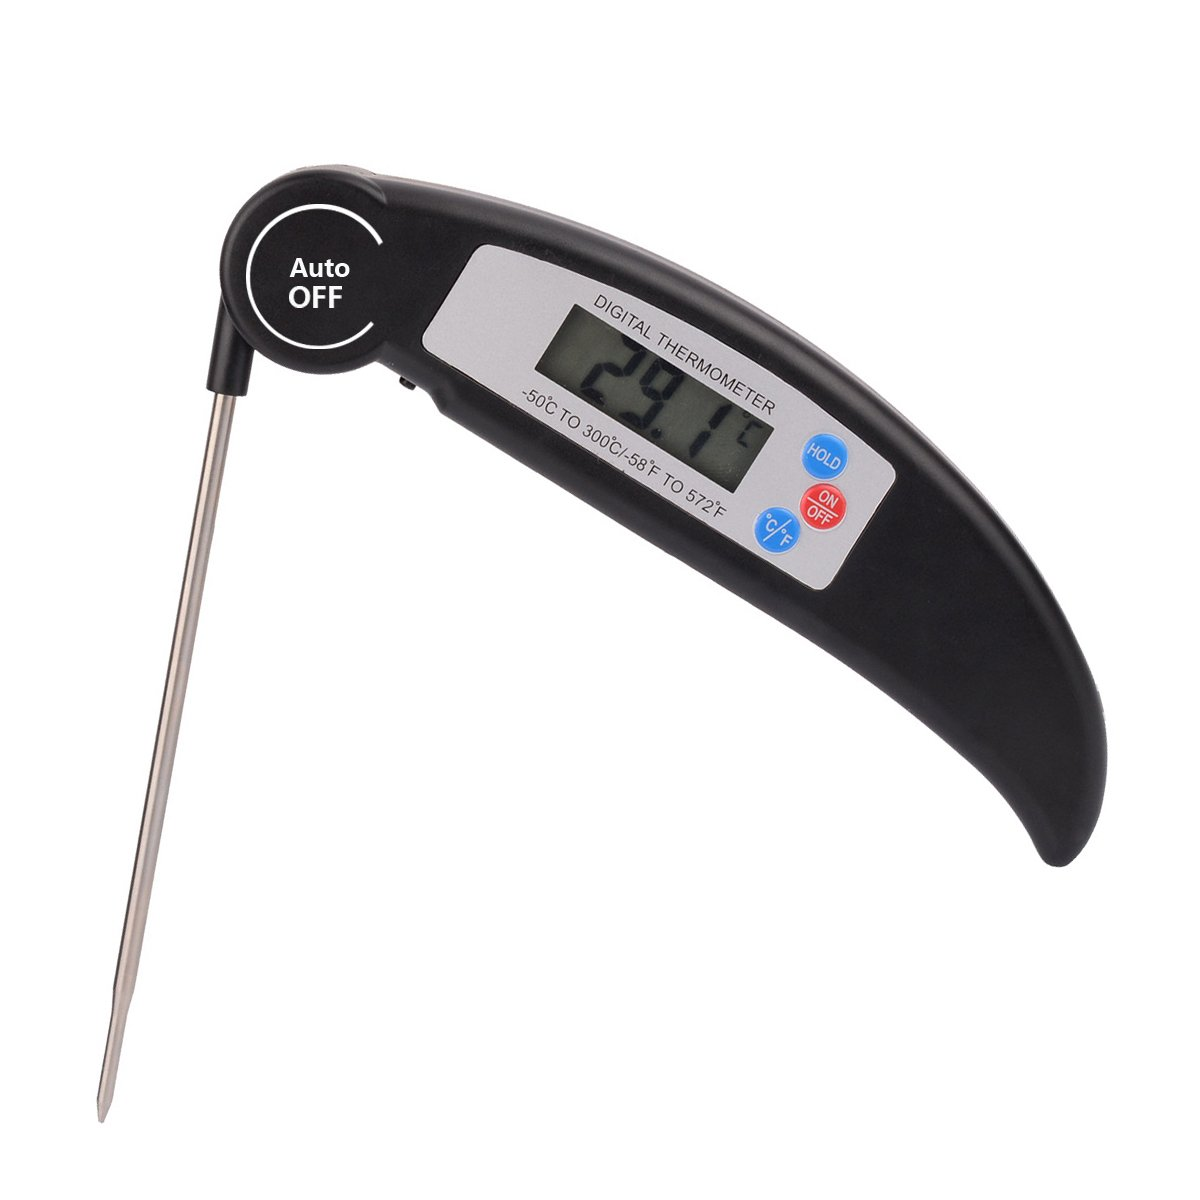 Meat Thermometer - JS-2701 Digital Food Cooking Thermometer Instant Read Meat Thermometer Kitchen BBQ Grill Smoker